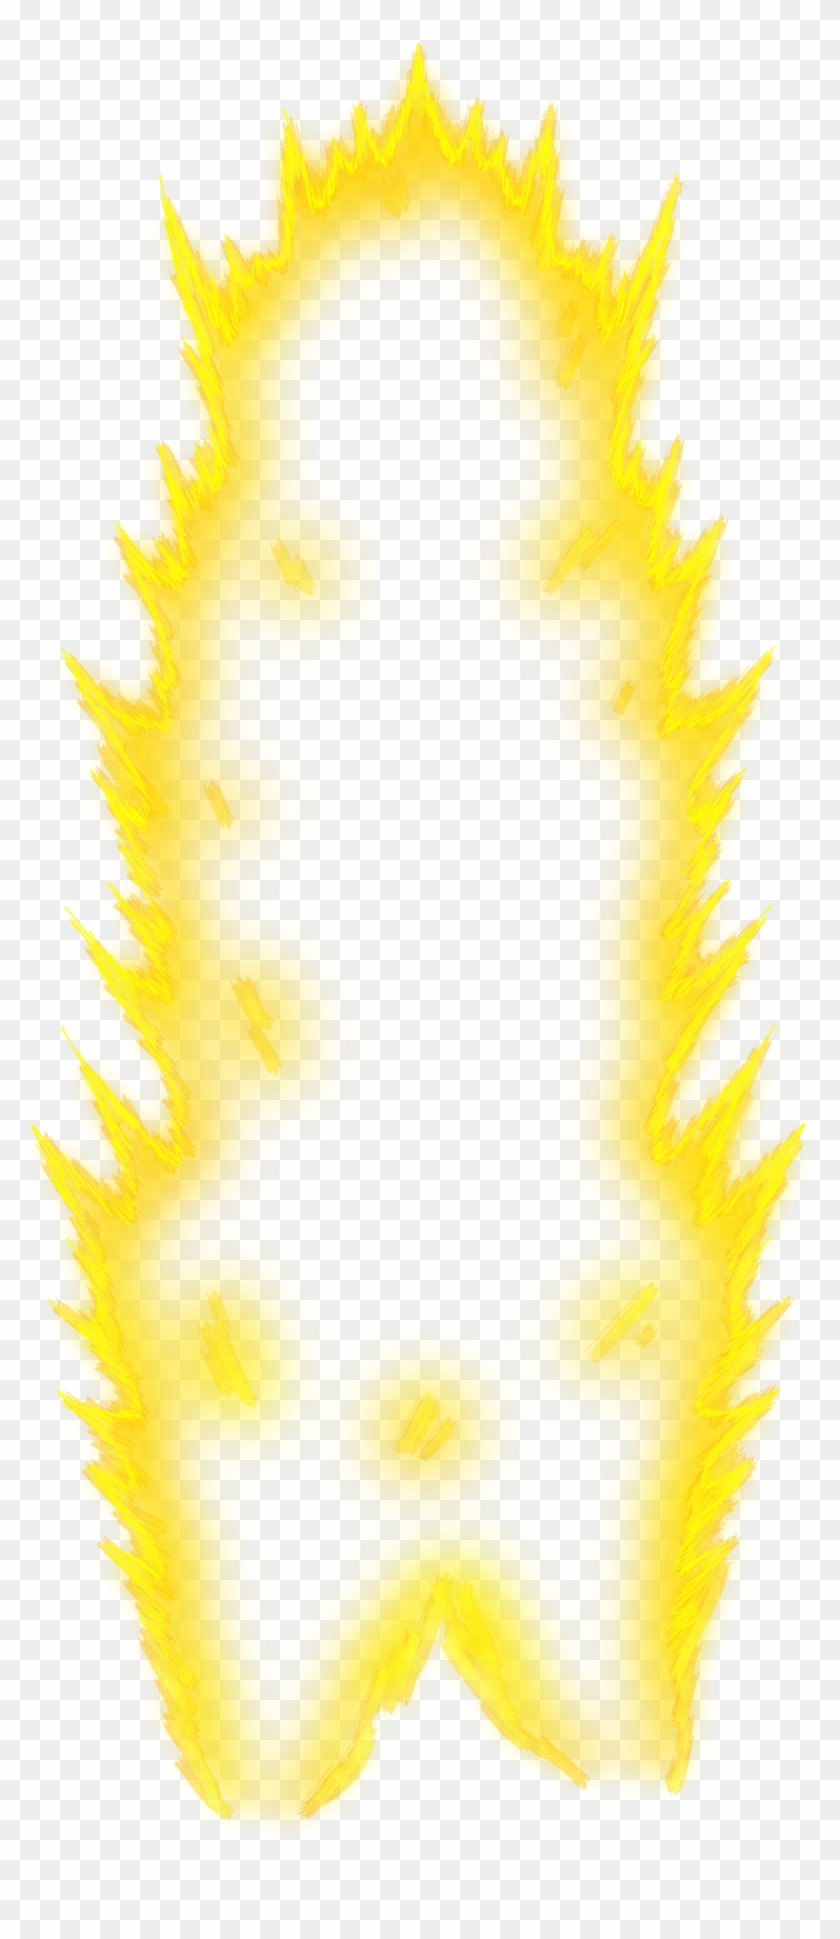 Super Saiyan Aura Png, Transparent Png.